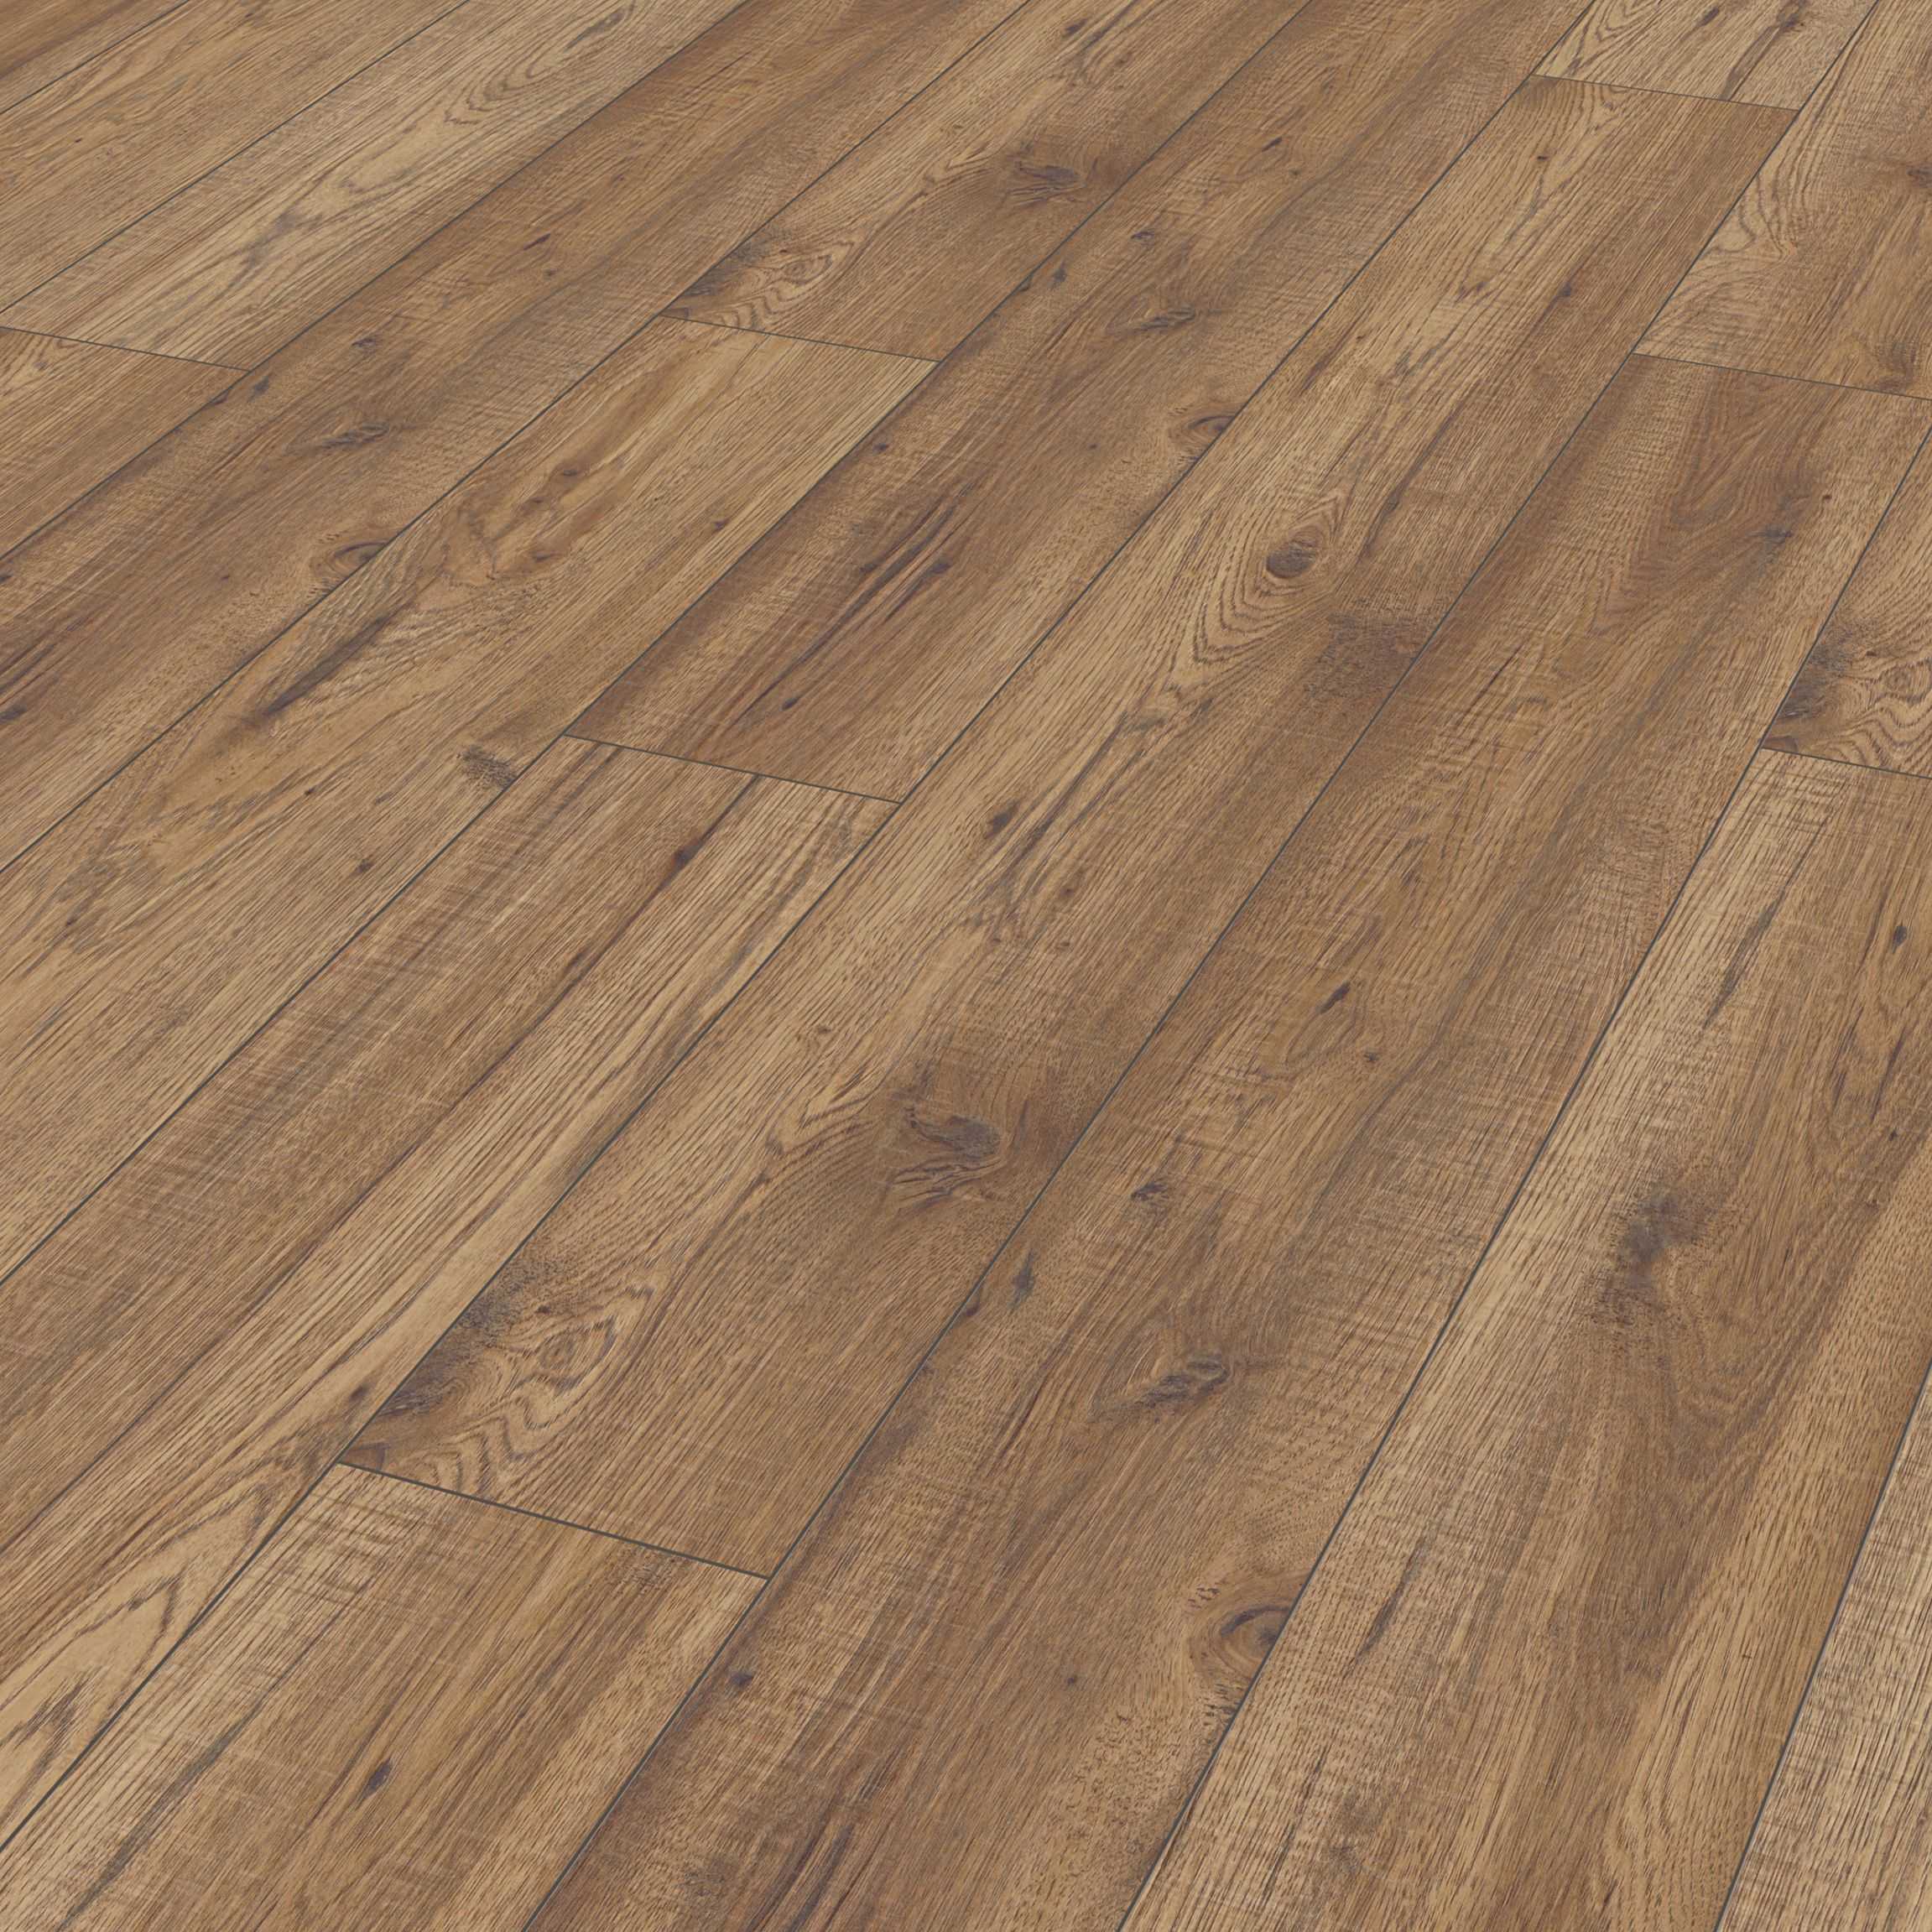 Ostend Oxford Oak Effect Laminate Flooring Designs